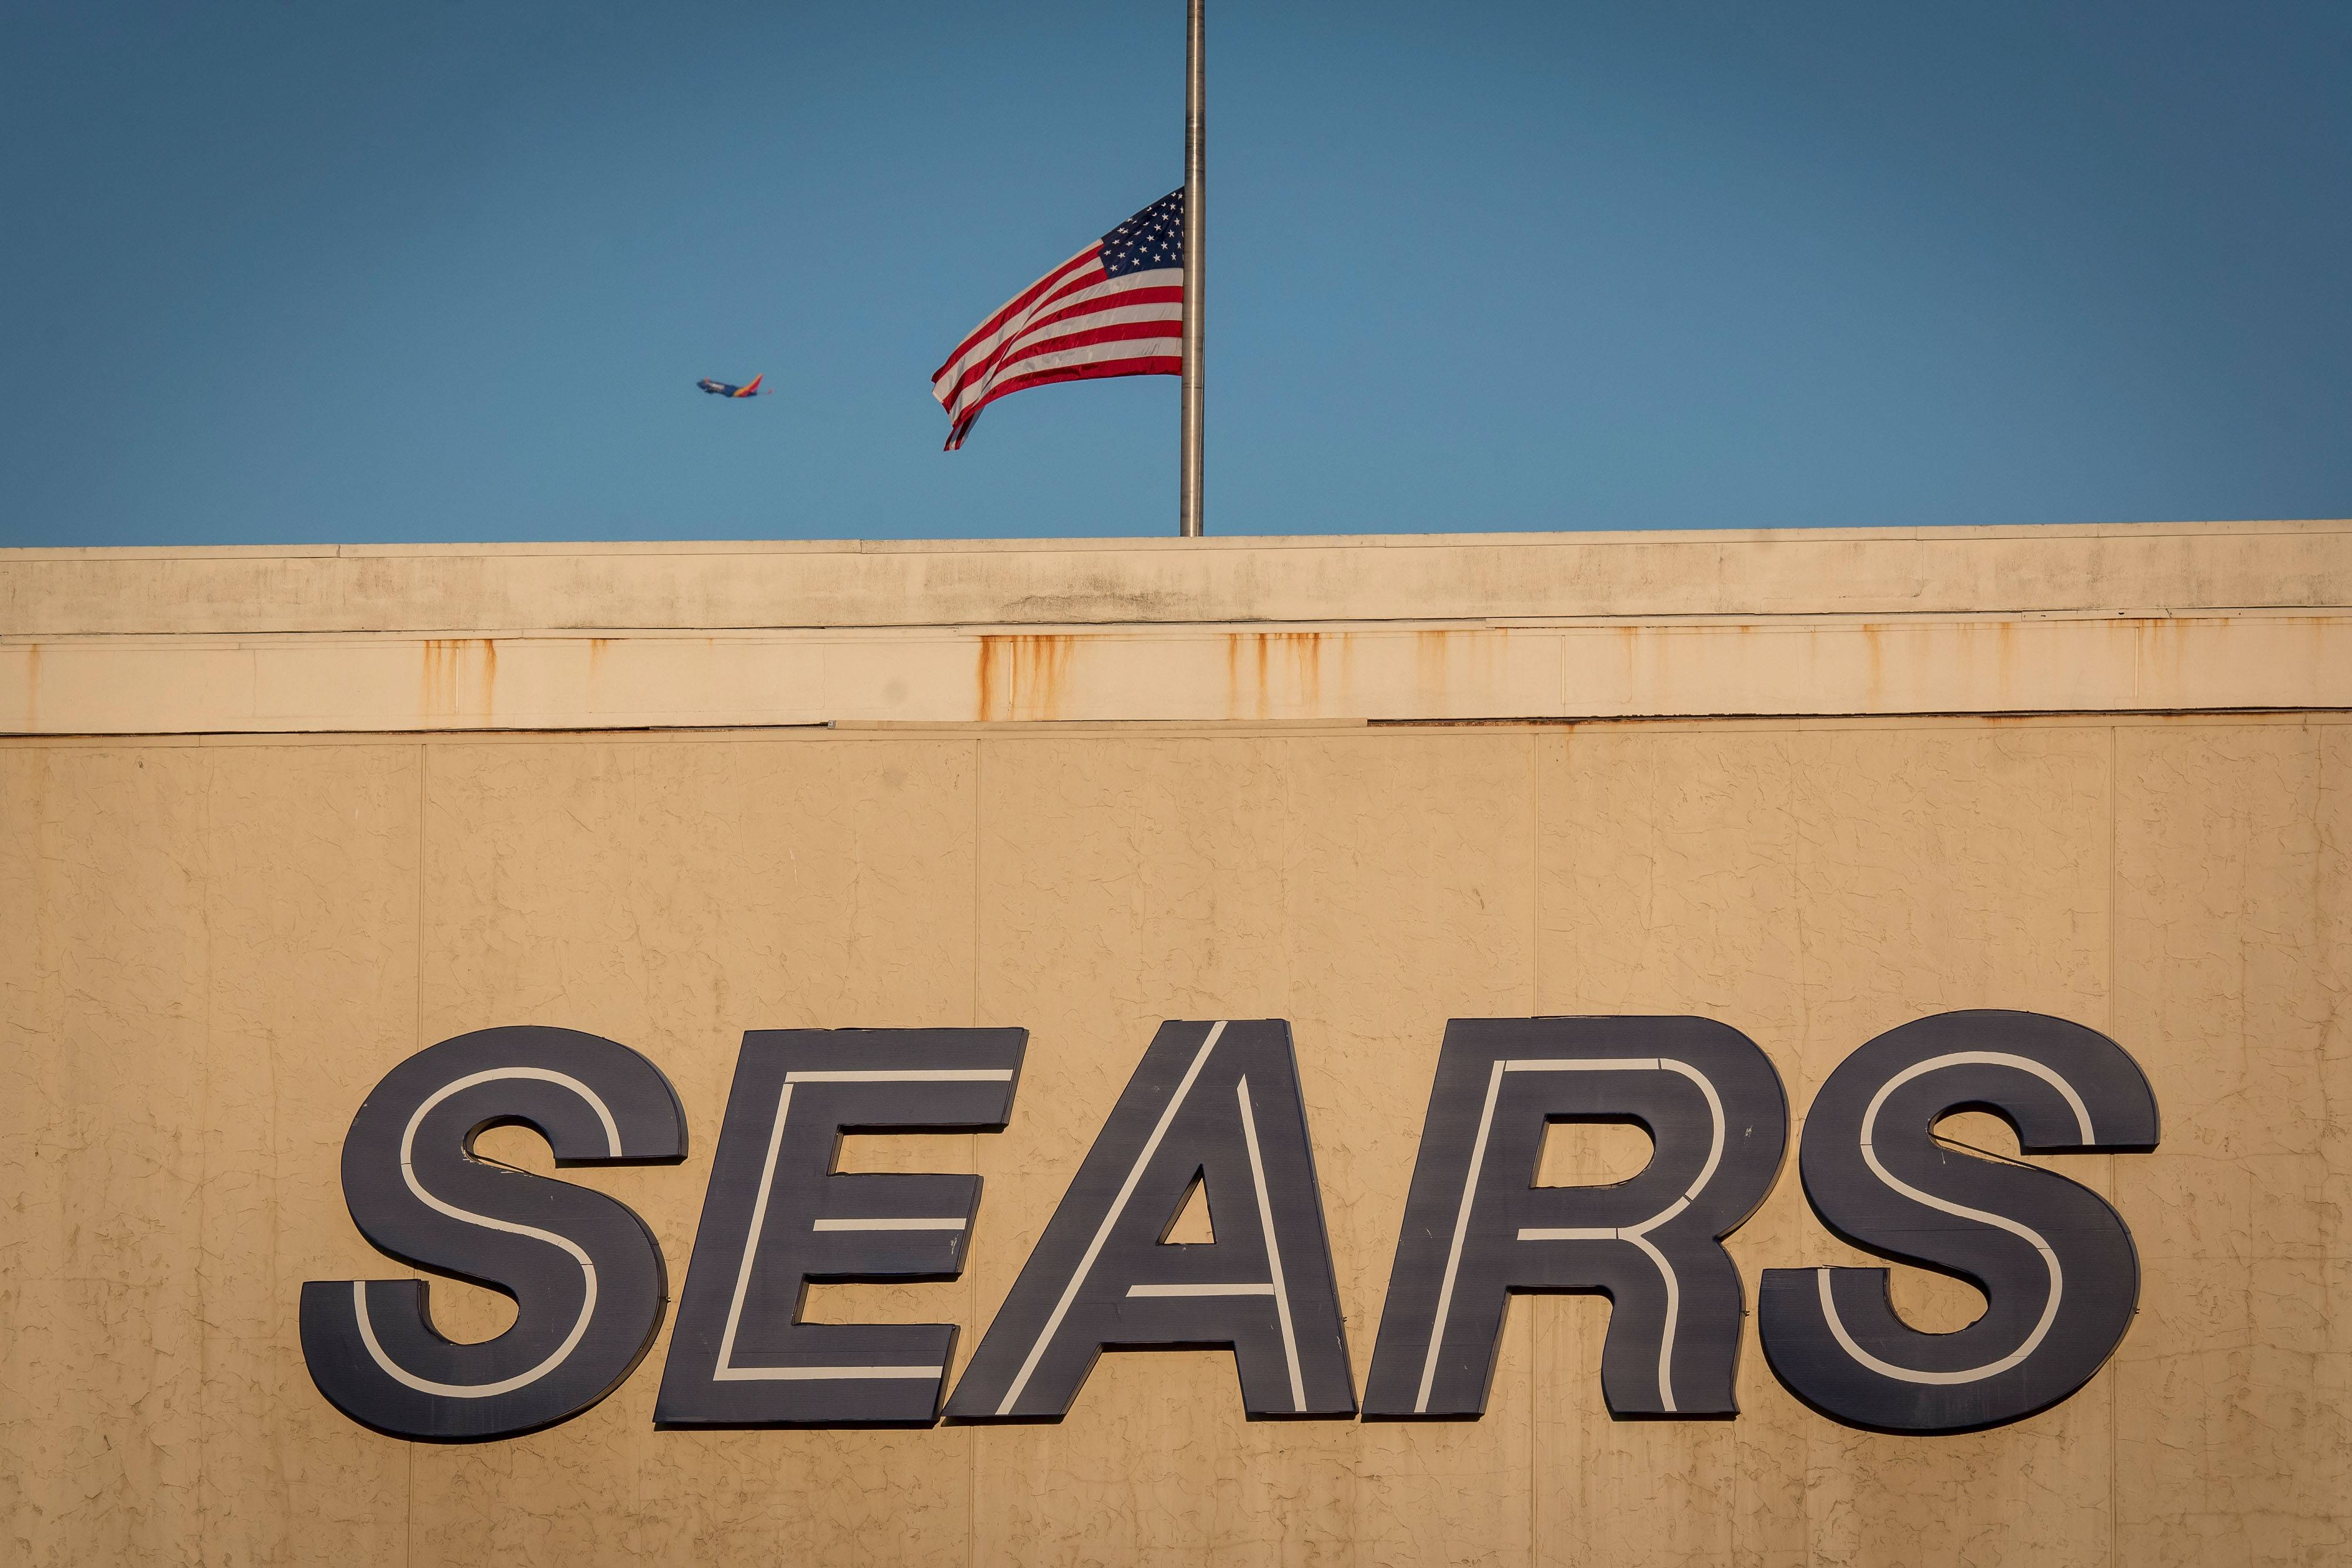 Eddie Lampert won a bankruptcy auction for Sears with a plan that will keep the bankrupt retailer in business and seek to save tens of thousands of jobs, according to a person with knowledge of the discussions.